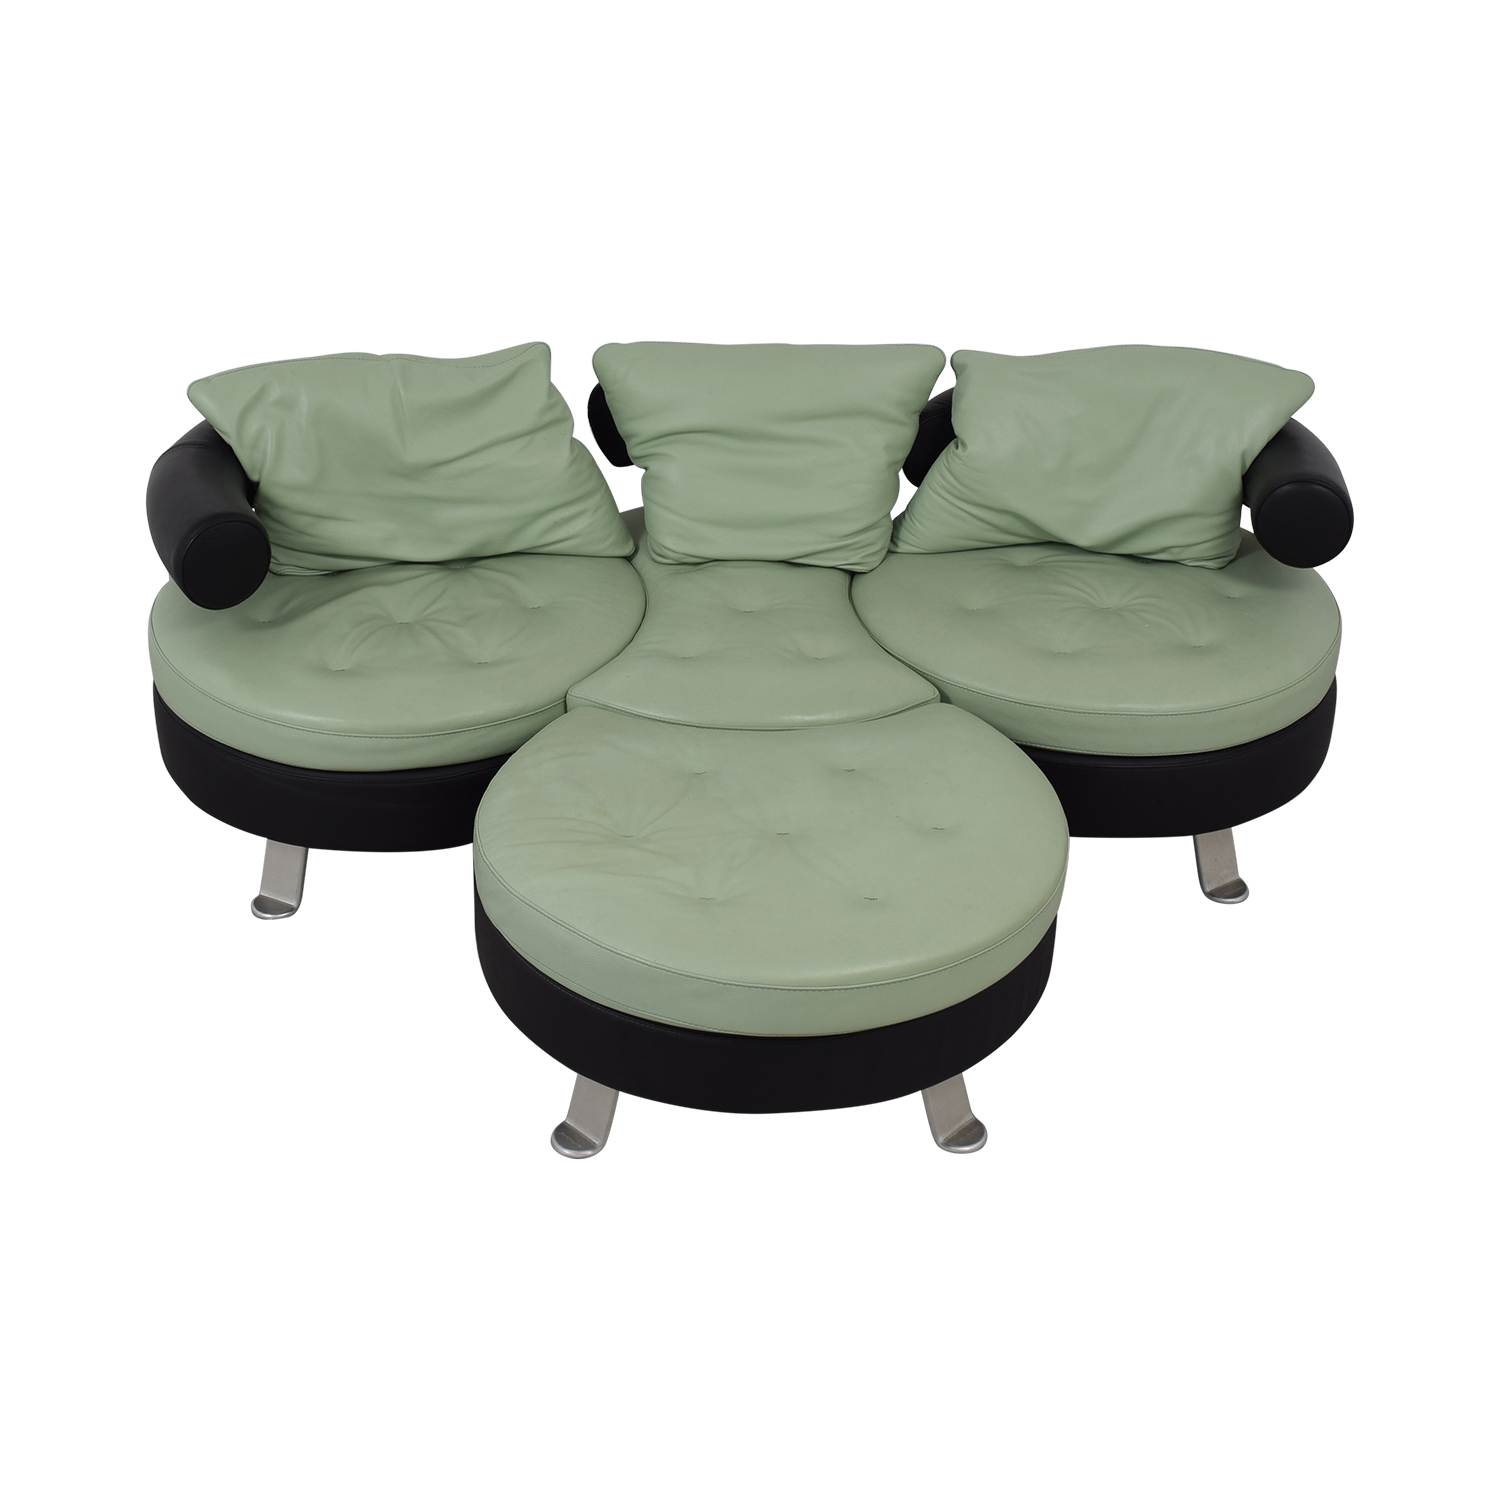 Formenti Swiveling Sofa with Matching Ottoman / Classic Sofas